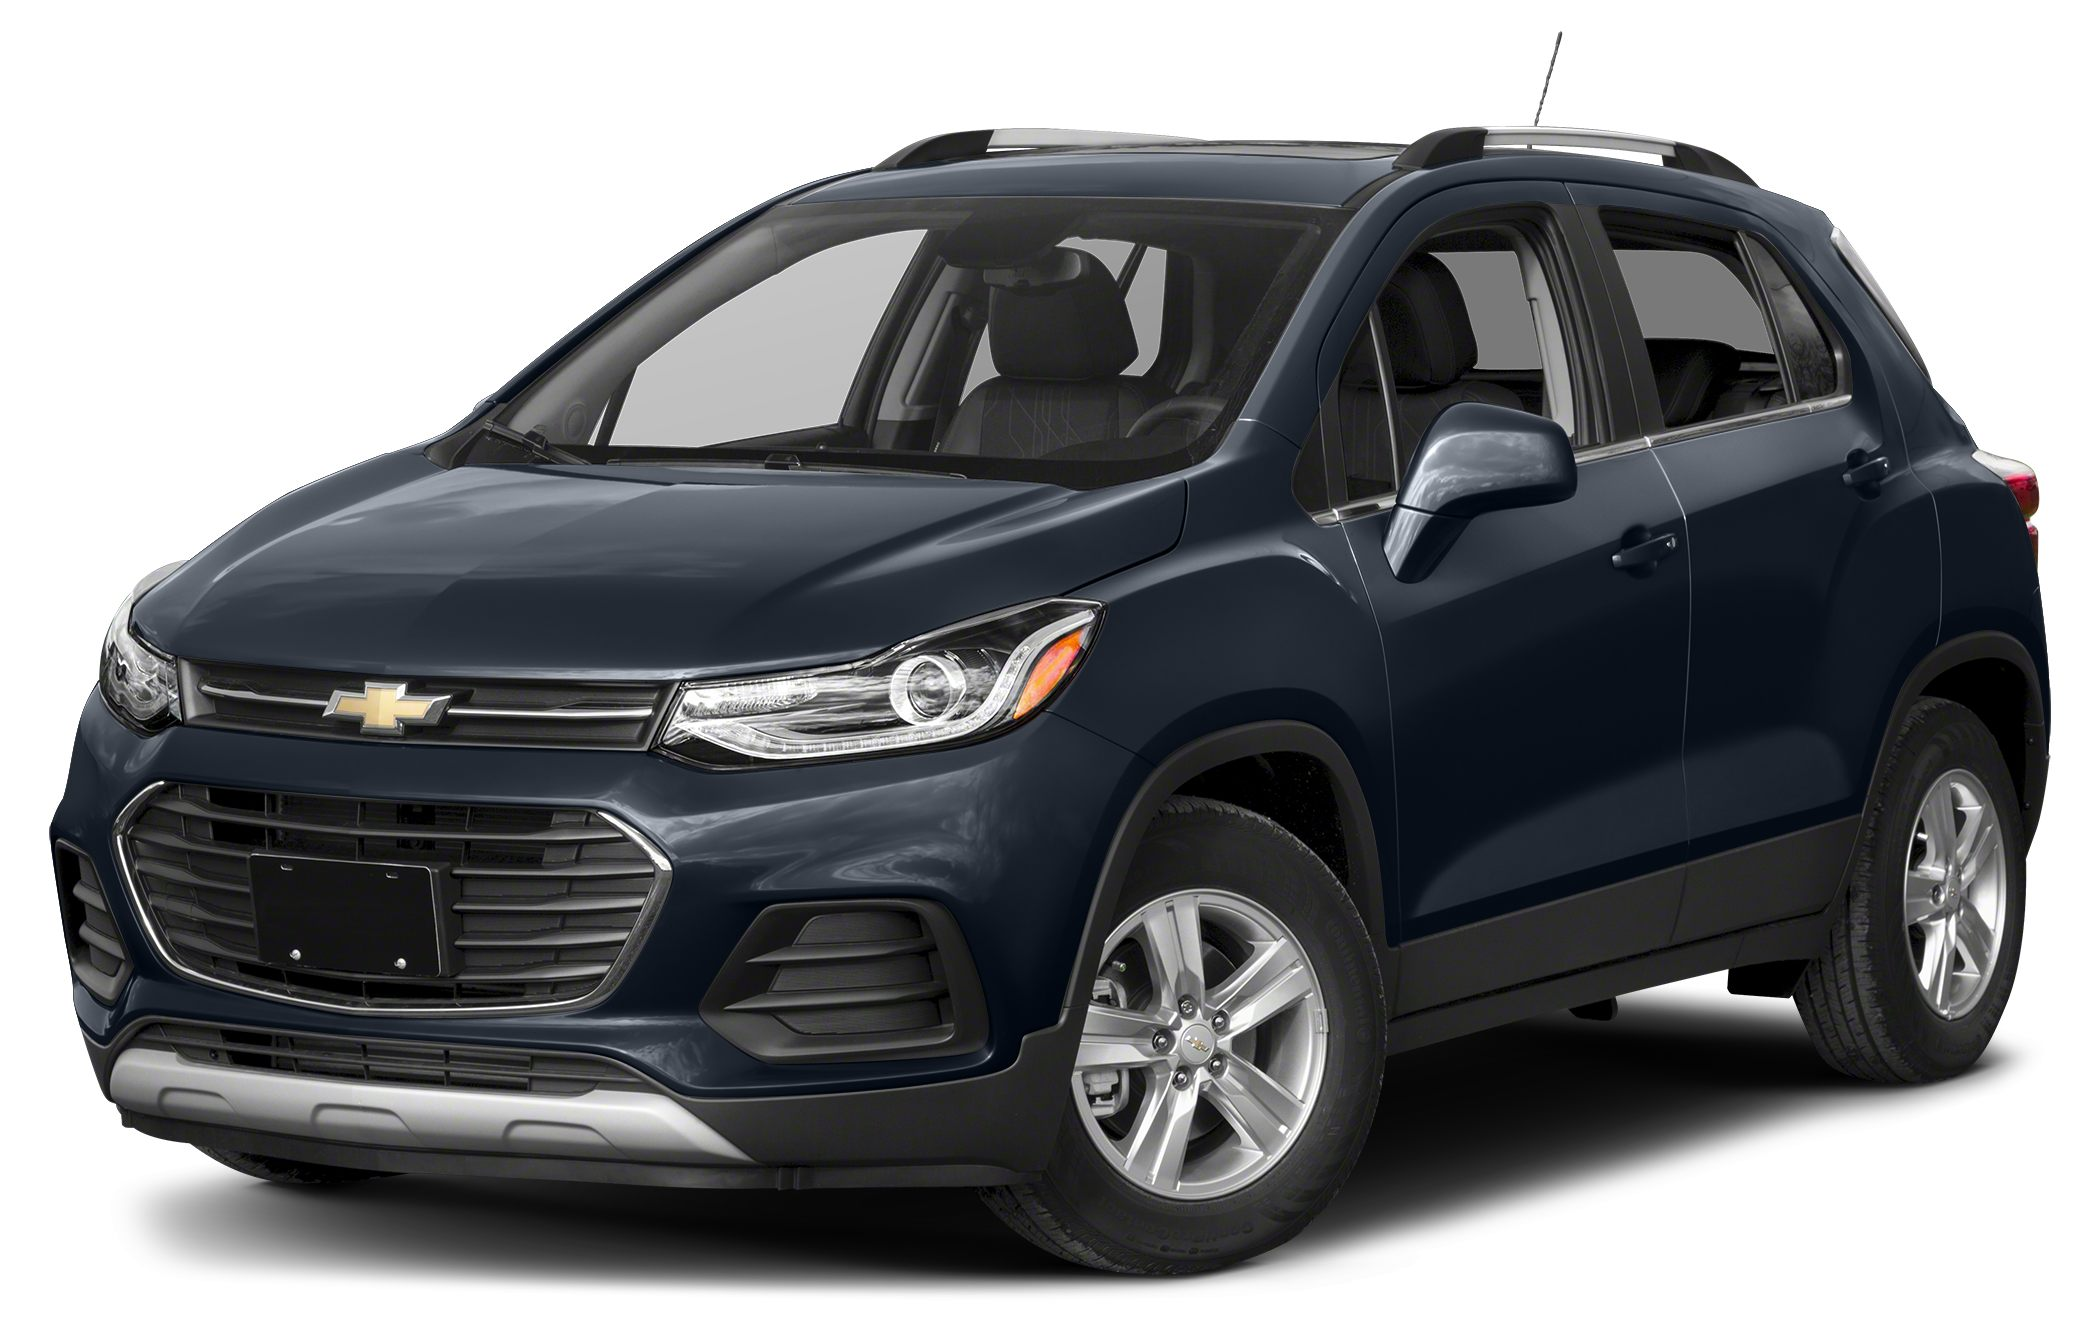 2018 Chevrolet Trax LT Blue Metallic 2018 Chevrolet Trax 1LT AWD 6-Speed Automatic ECOTEC 14L I4